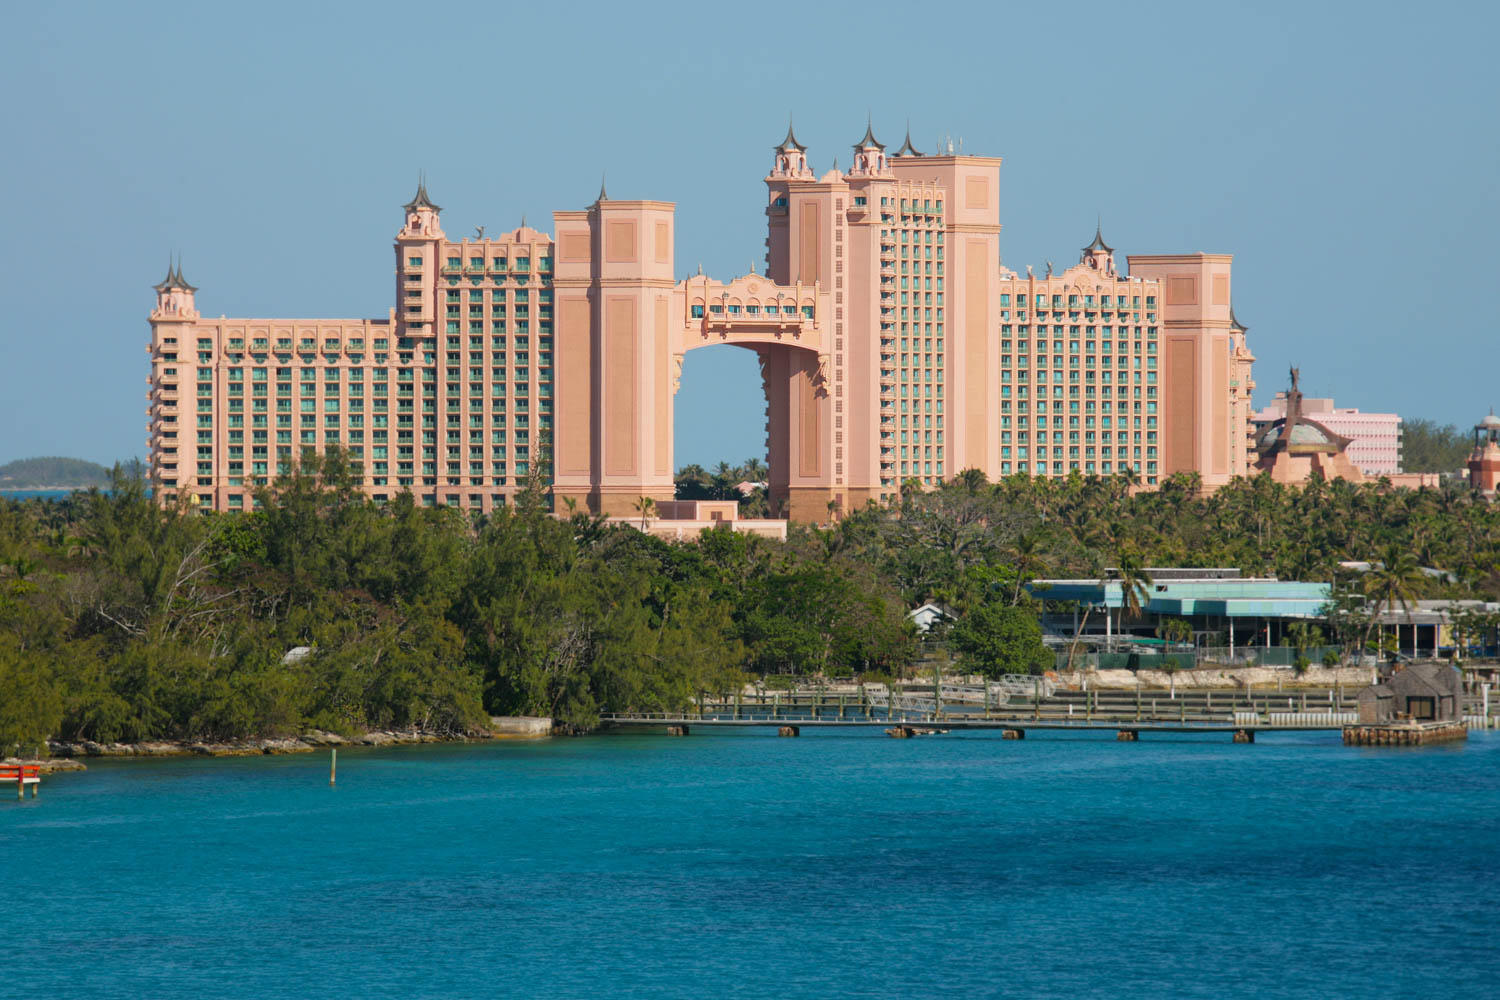 You must visit Atlantis Resorts in Paradise Island on your day trip to Bahamas. There are so many things to do in Atlantis Bahamas like the Aquaventure Waterpark. One of the things to do in Nassau Bahamas.